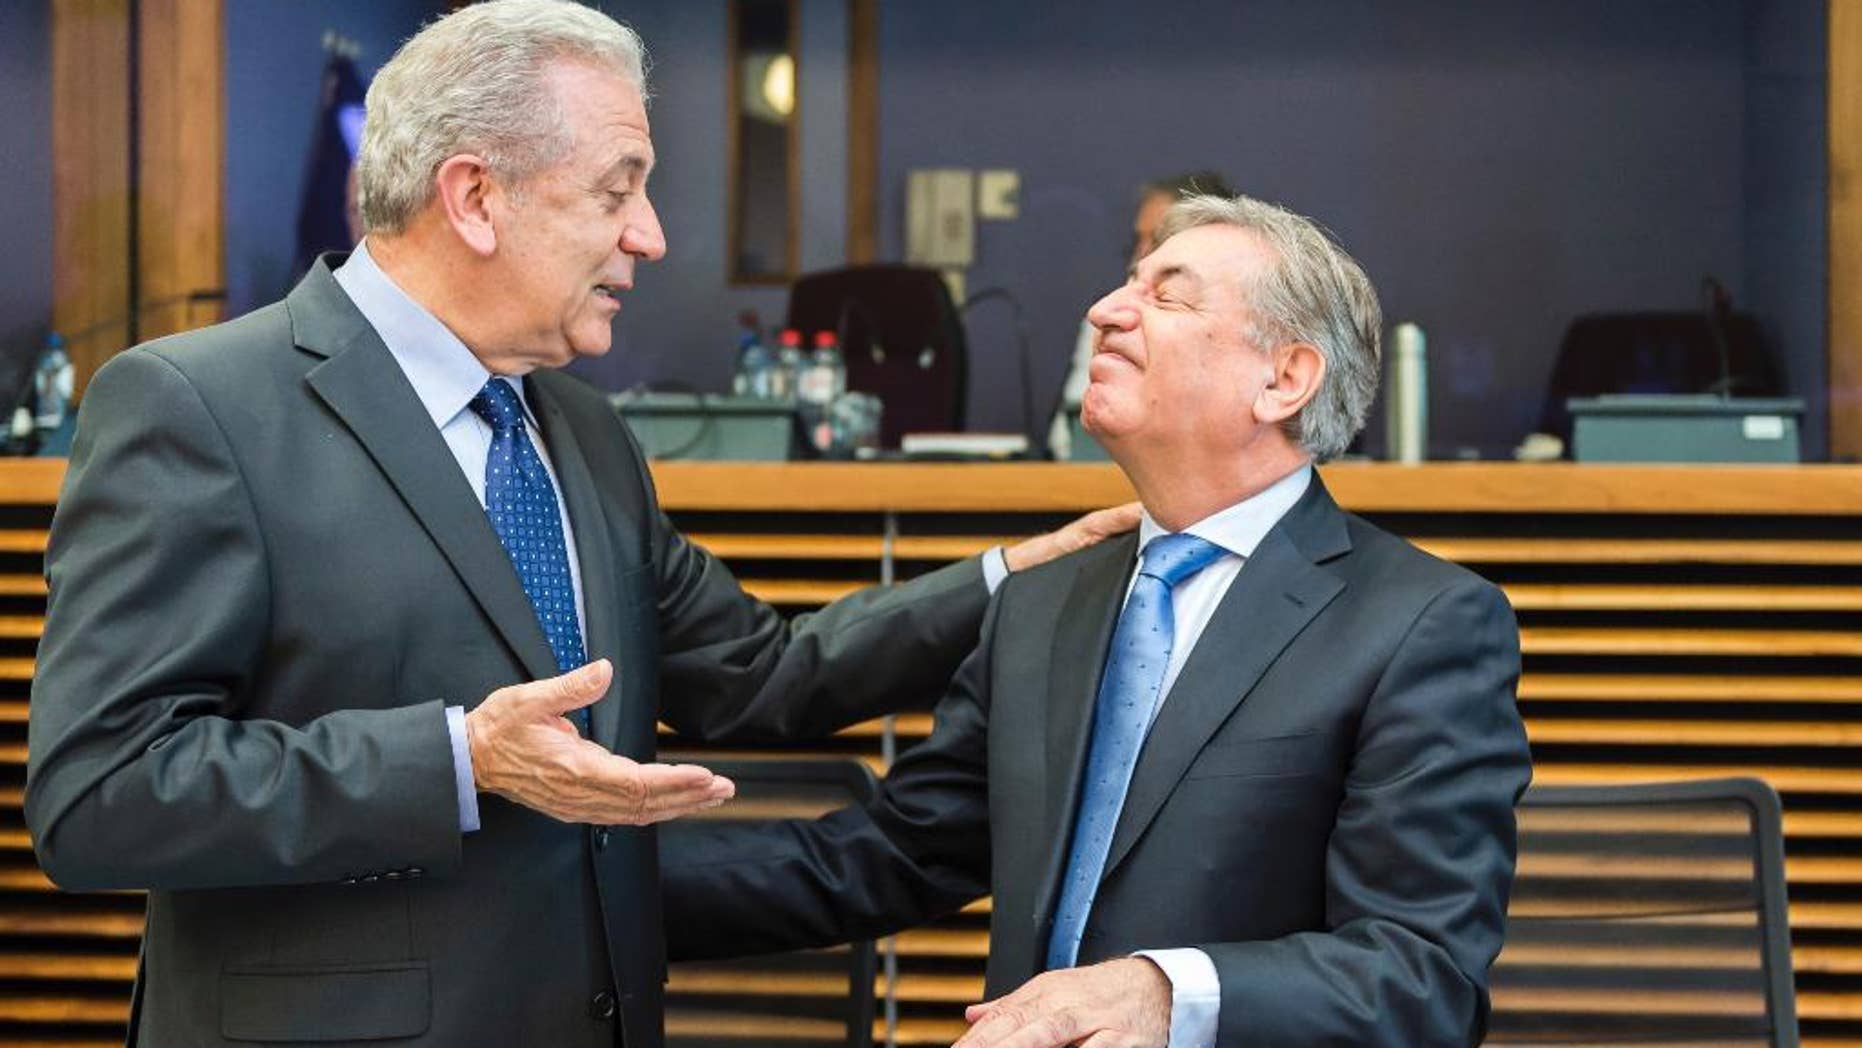 European Commissioner for Migration, Home Affairs and Citizenship Dimitris Avramopoulos, left, talks with European Commissioner for Environment, Maritime Affairs and Fisheries Karmenu Vella during the weekly meeting of commissioners at EU Commission headquarters in Brussels on Wednesday April 20, 2016. (AP Photo/Geert Vanden Wijngaert)